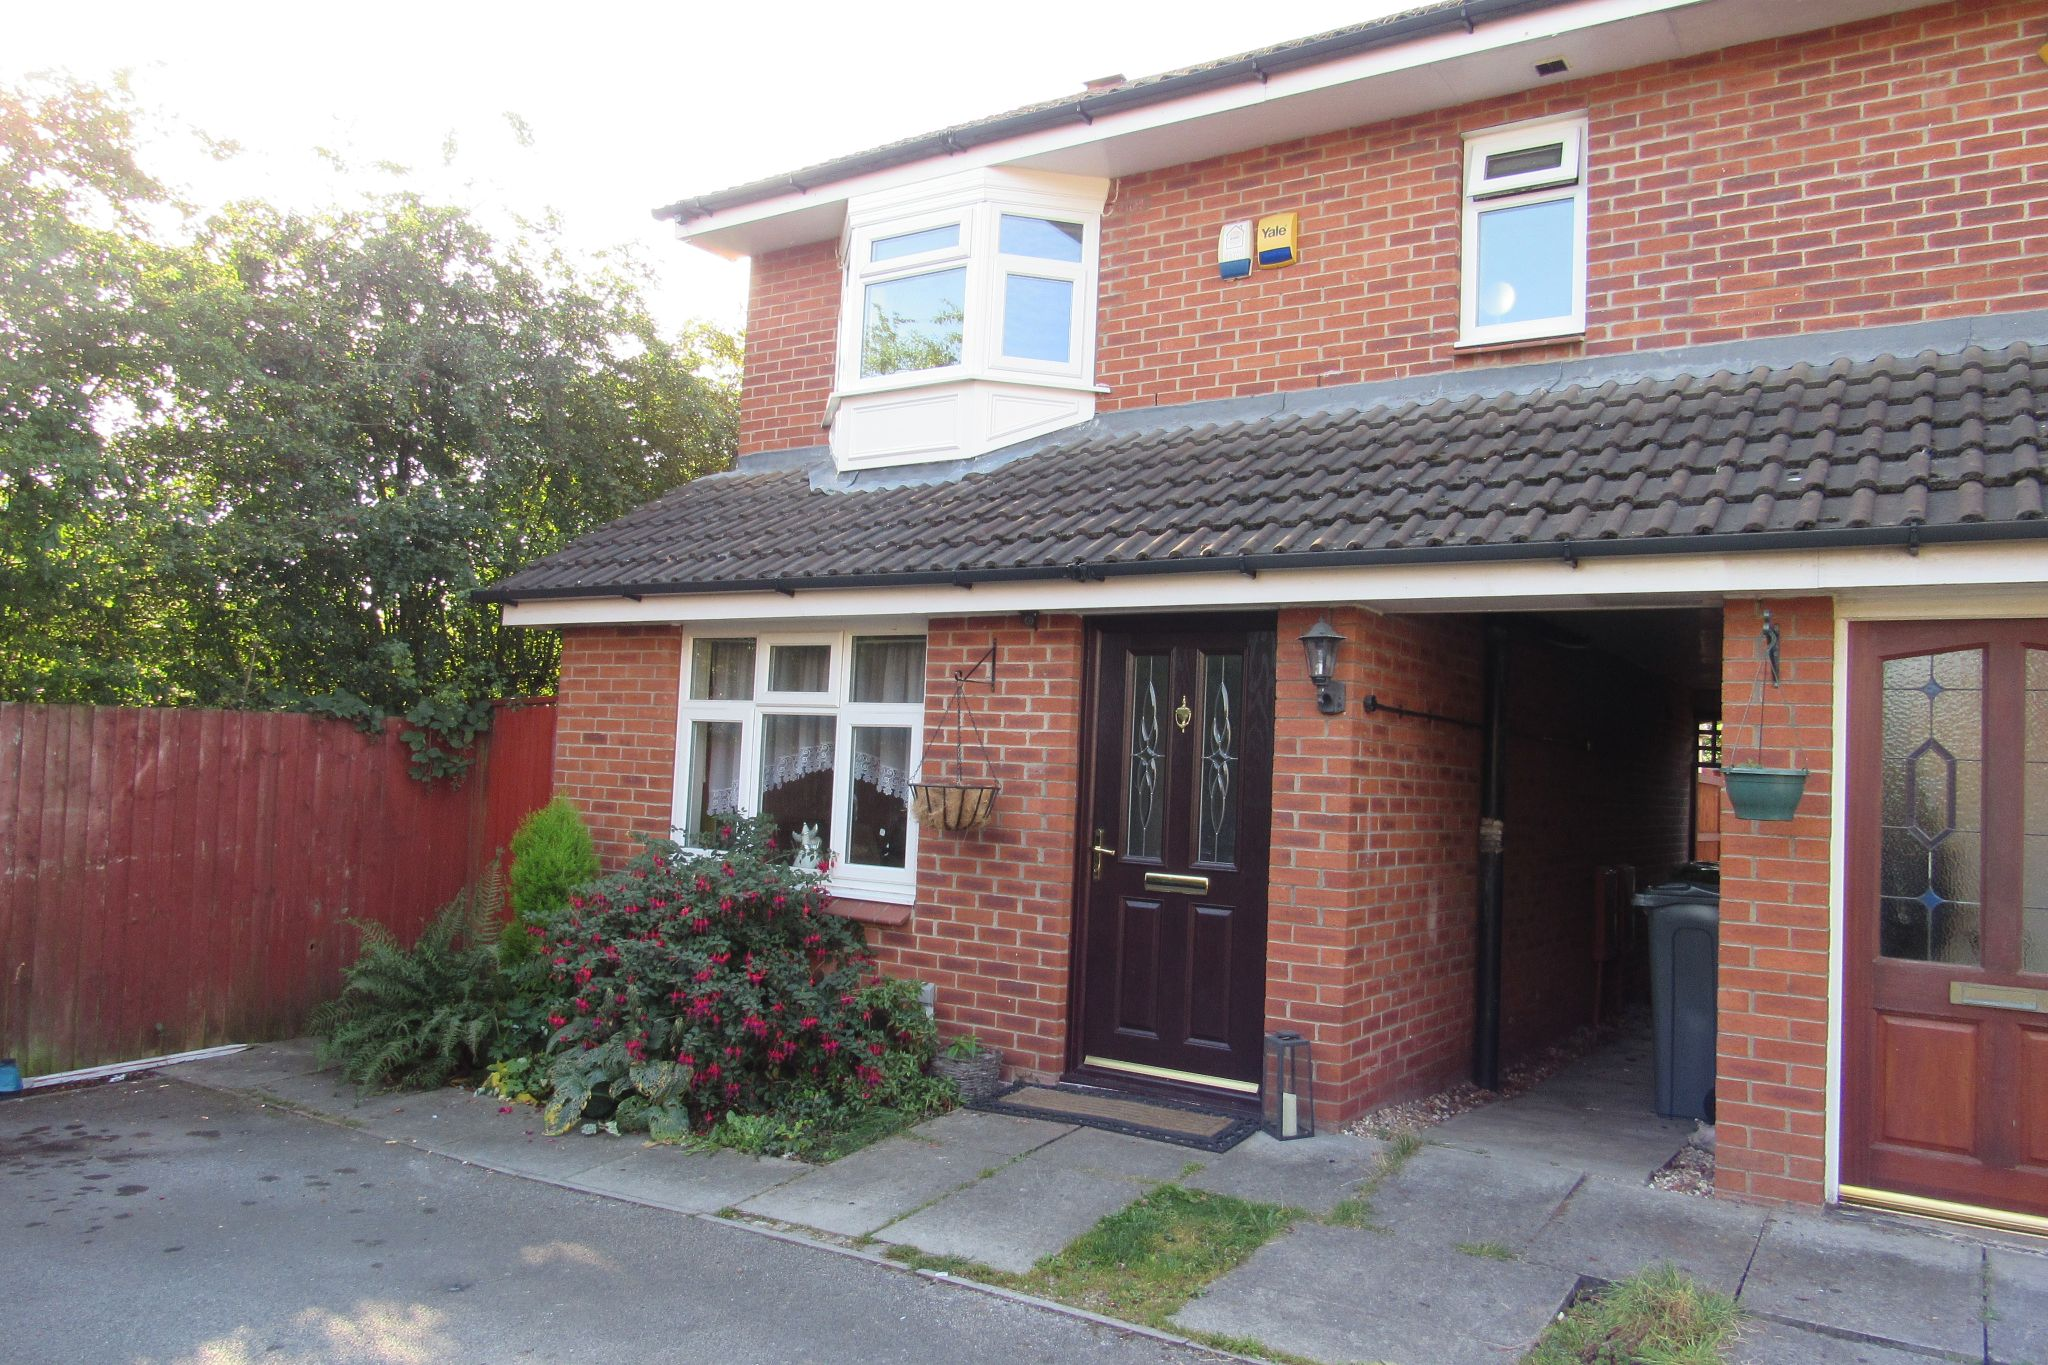 2 bedroom end terraced house SSTC in Manchester - Photograph 18.